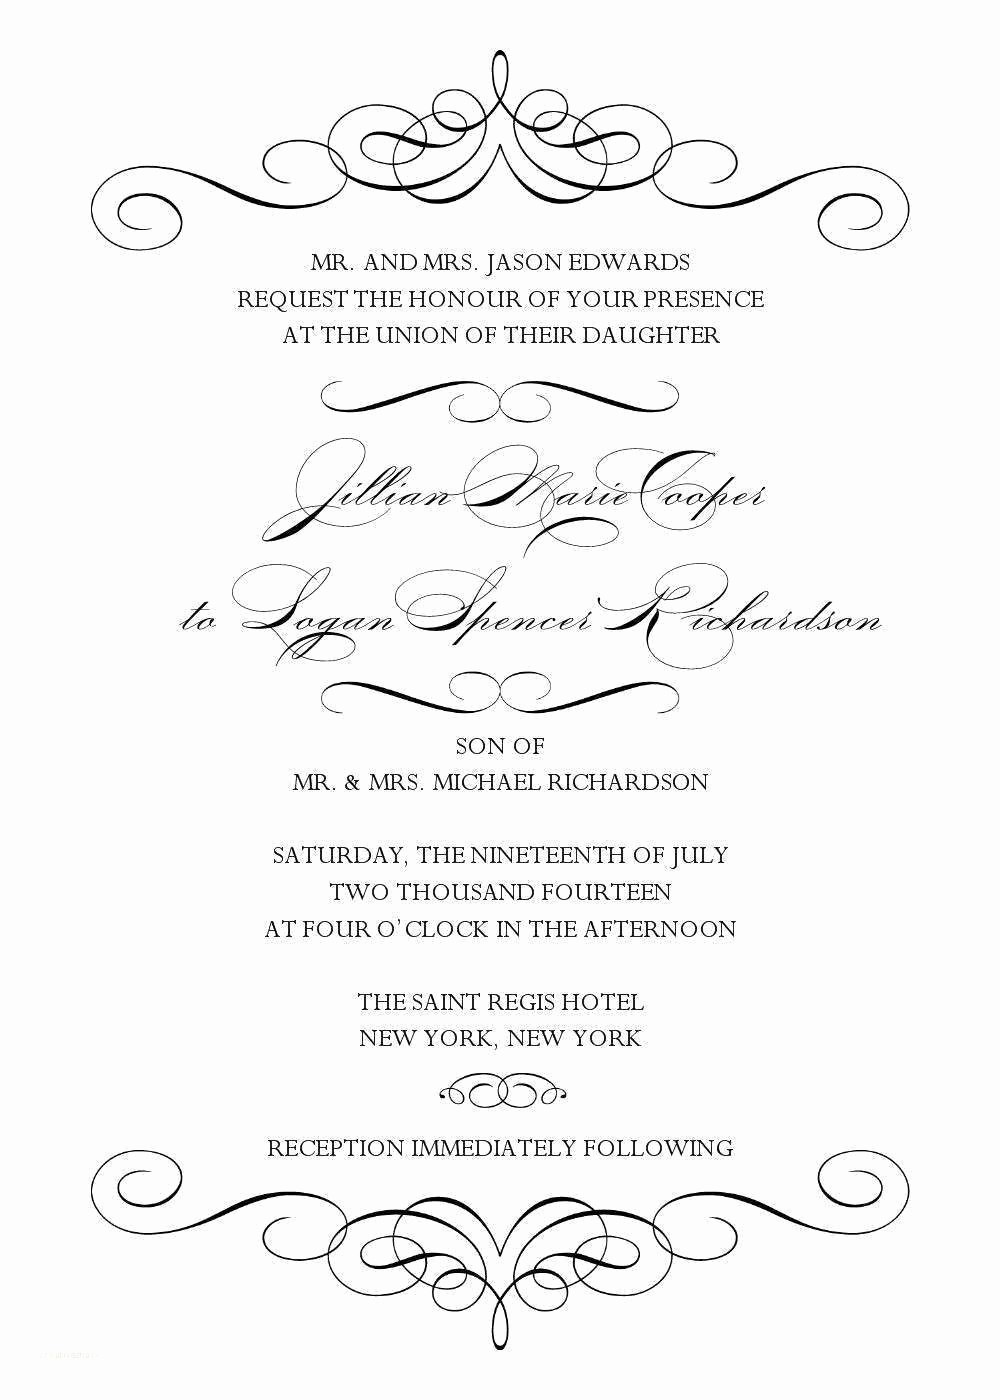 Wedding Invitation Template Word Free Beautiful Blank Wedding Invitation Templates for Microsoft Word